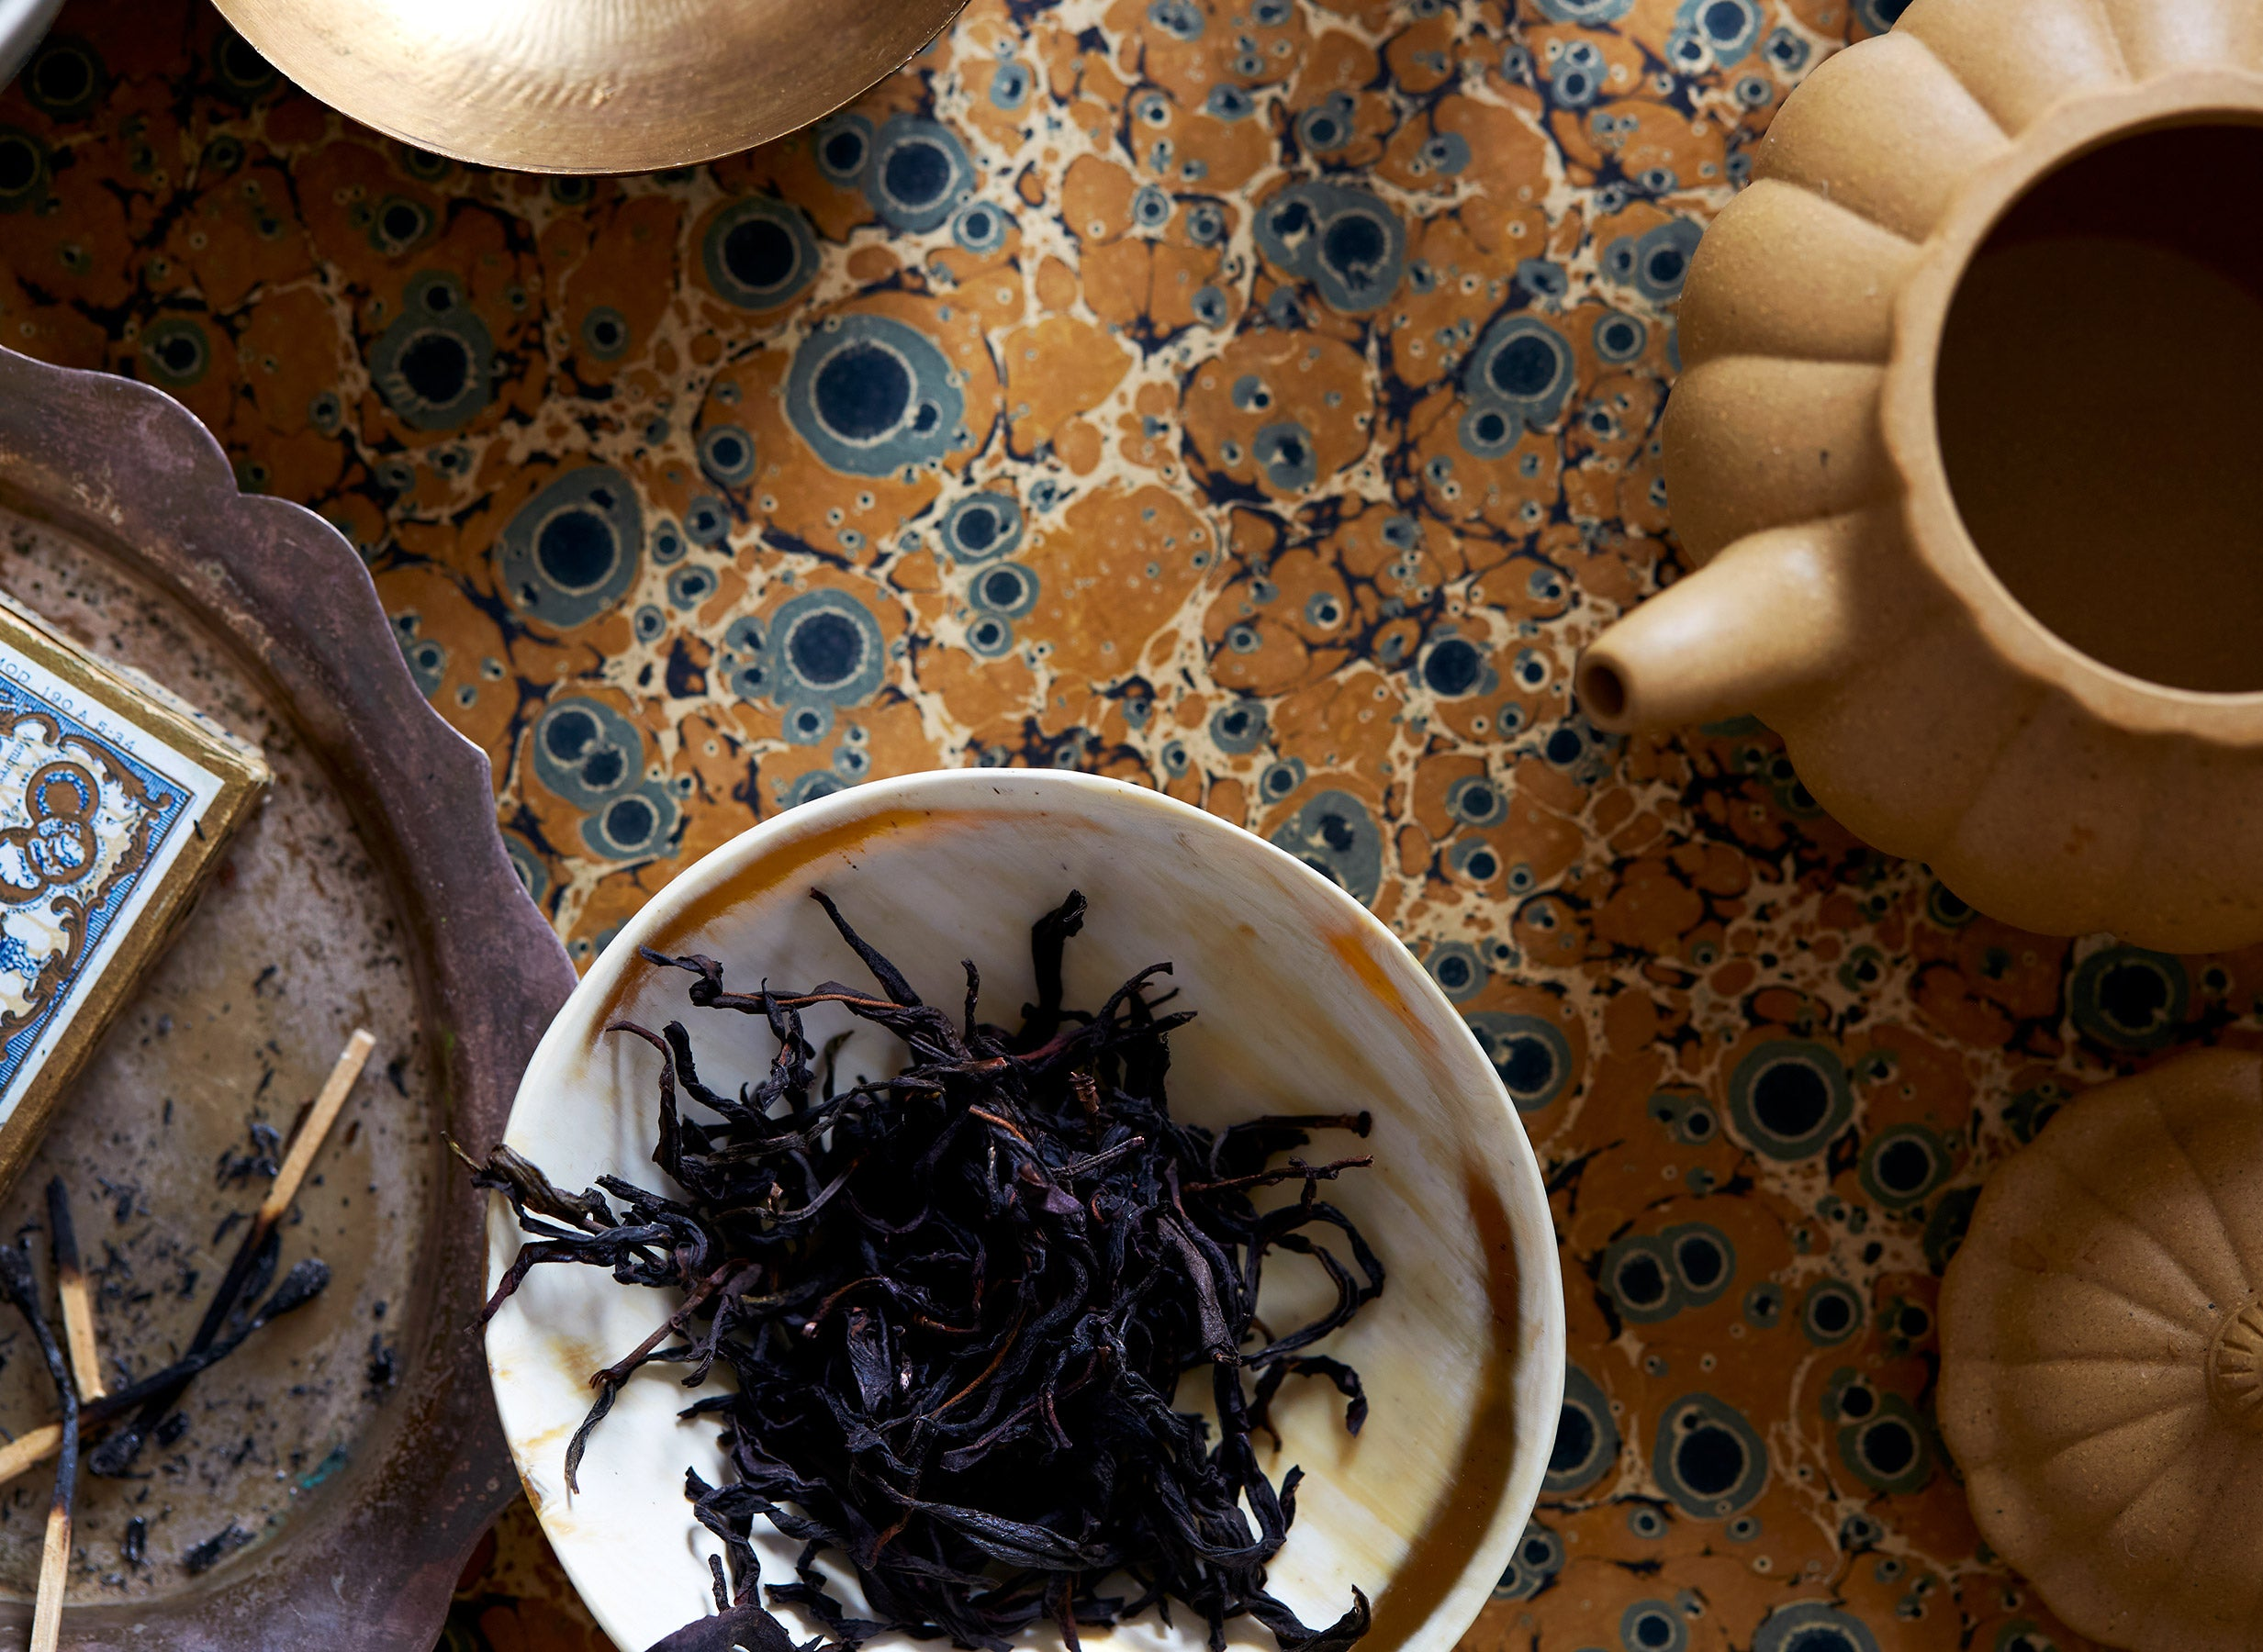 Shop premium loose leaf oolong tea at BELLOCQ. Our collection features a wide selection of organic oolong teas, grown in the high elevations of Taiwan and Fujian China.